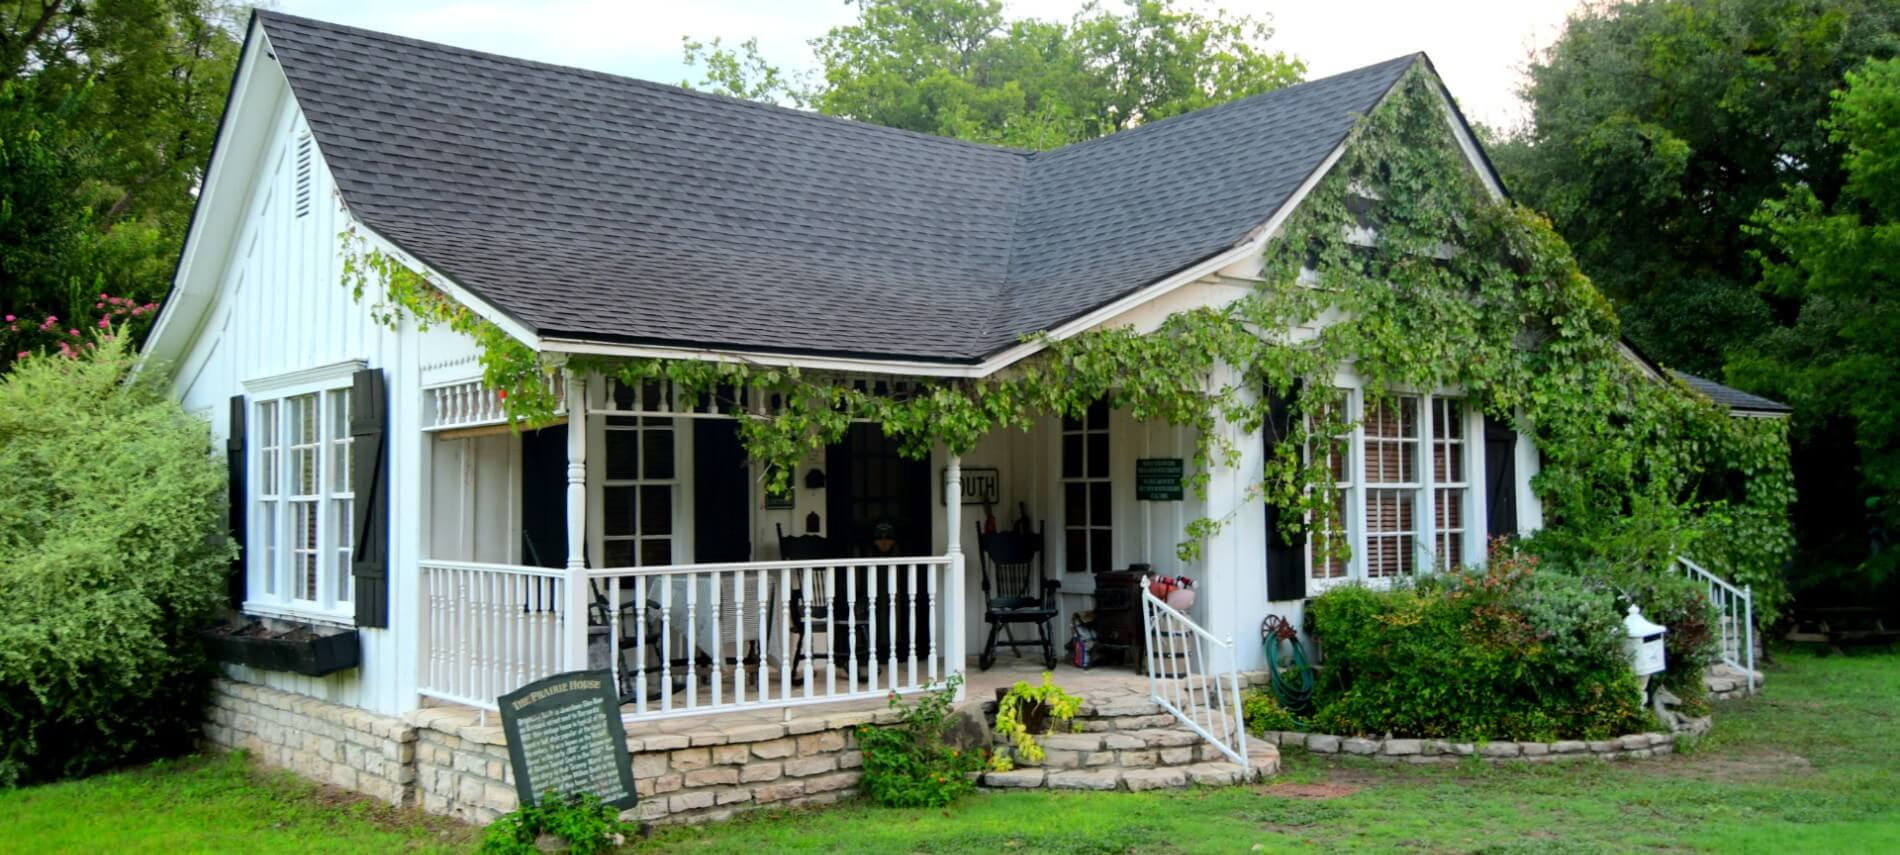 White cabin with roses growing over it and a stone porch.